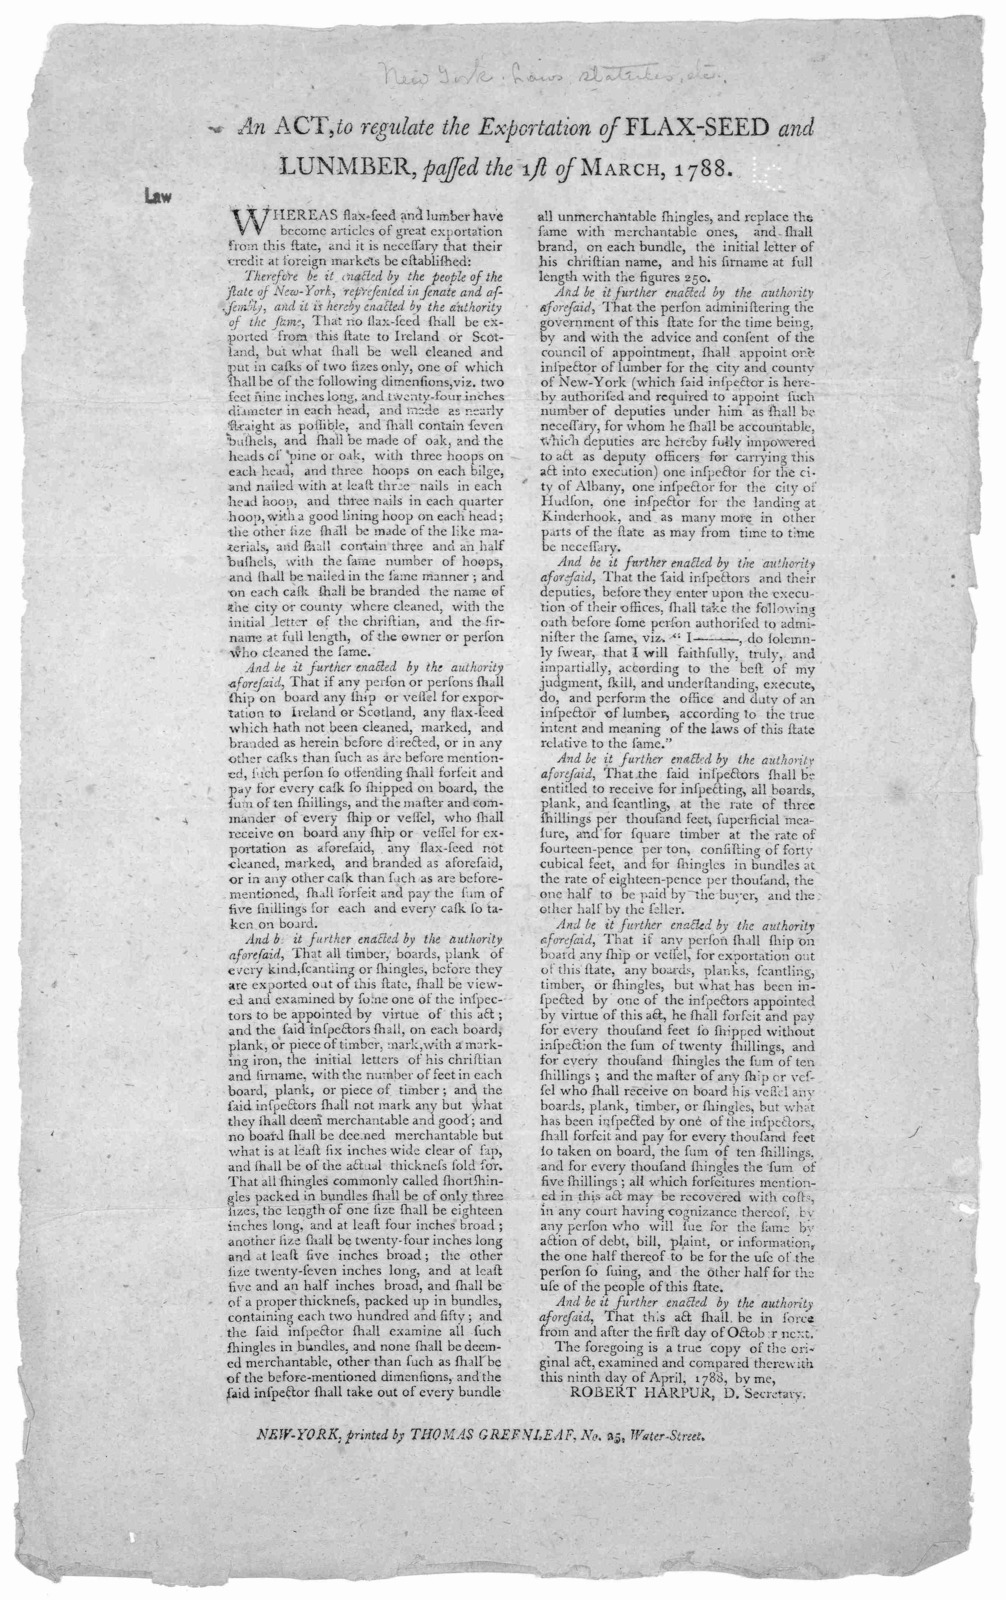 An act, to regulate the exportation of flax-seed and lunmber, passed the 1st of March 1788 ... New-York, Printed by Thomas Greenleaf, No. 25 Water-Street [1788].